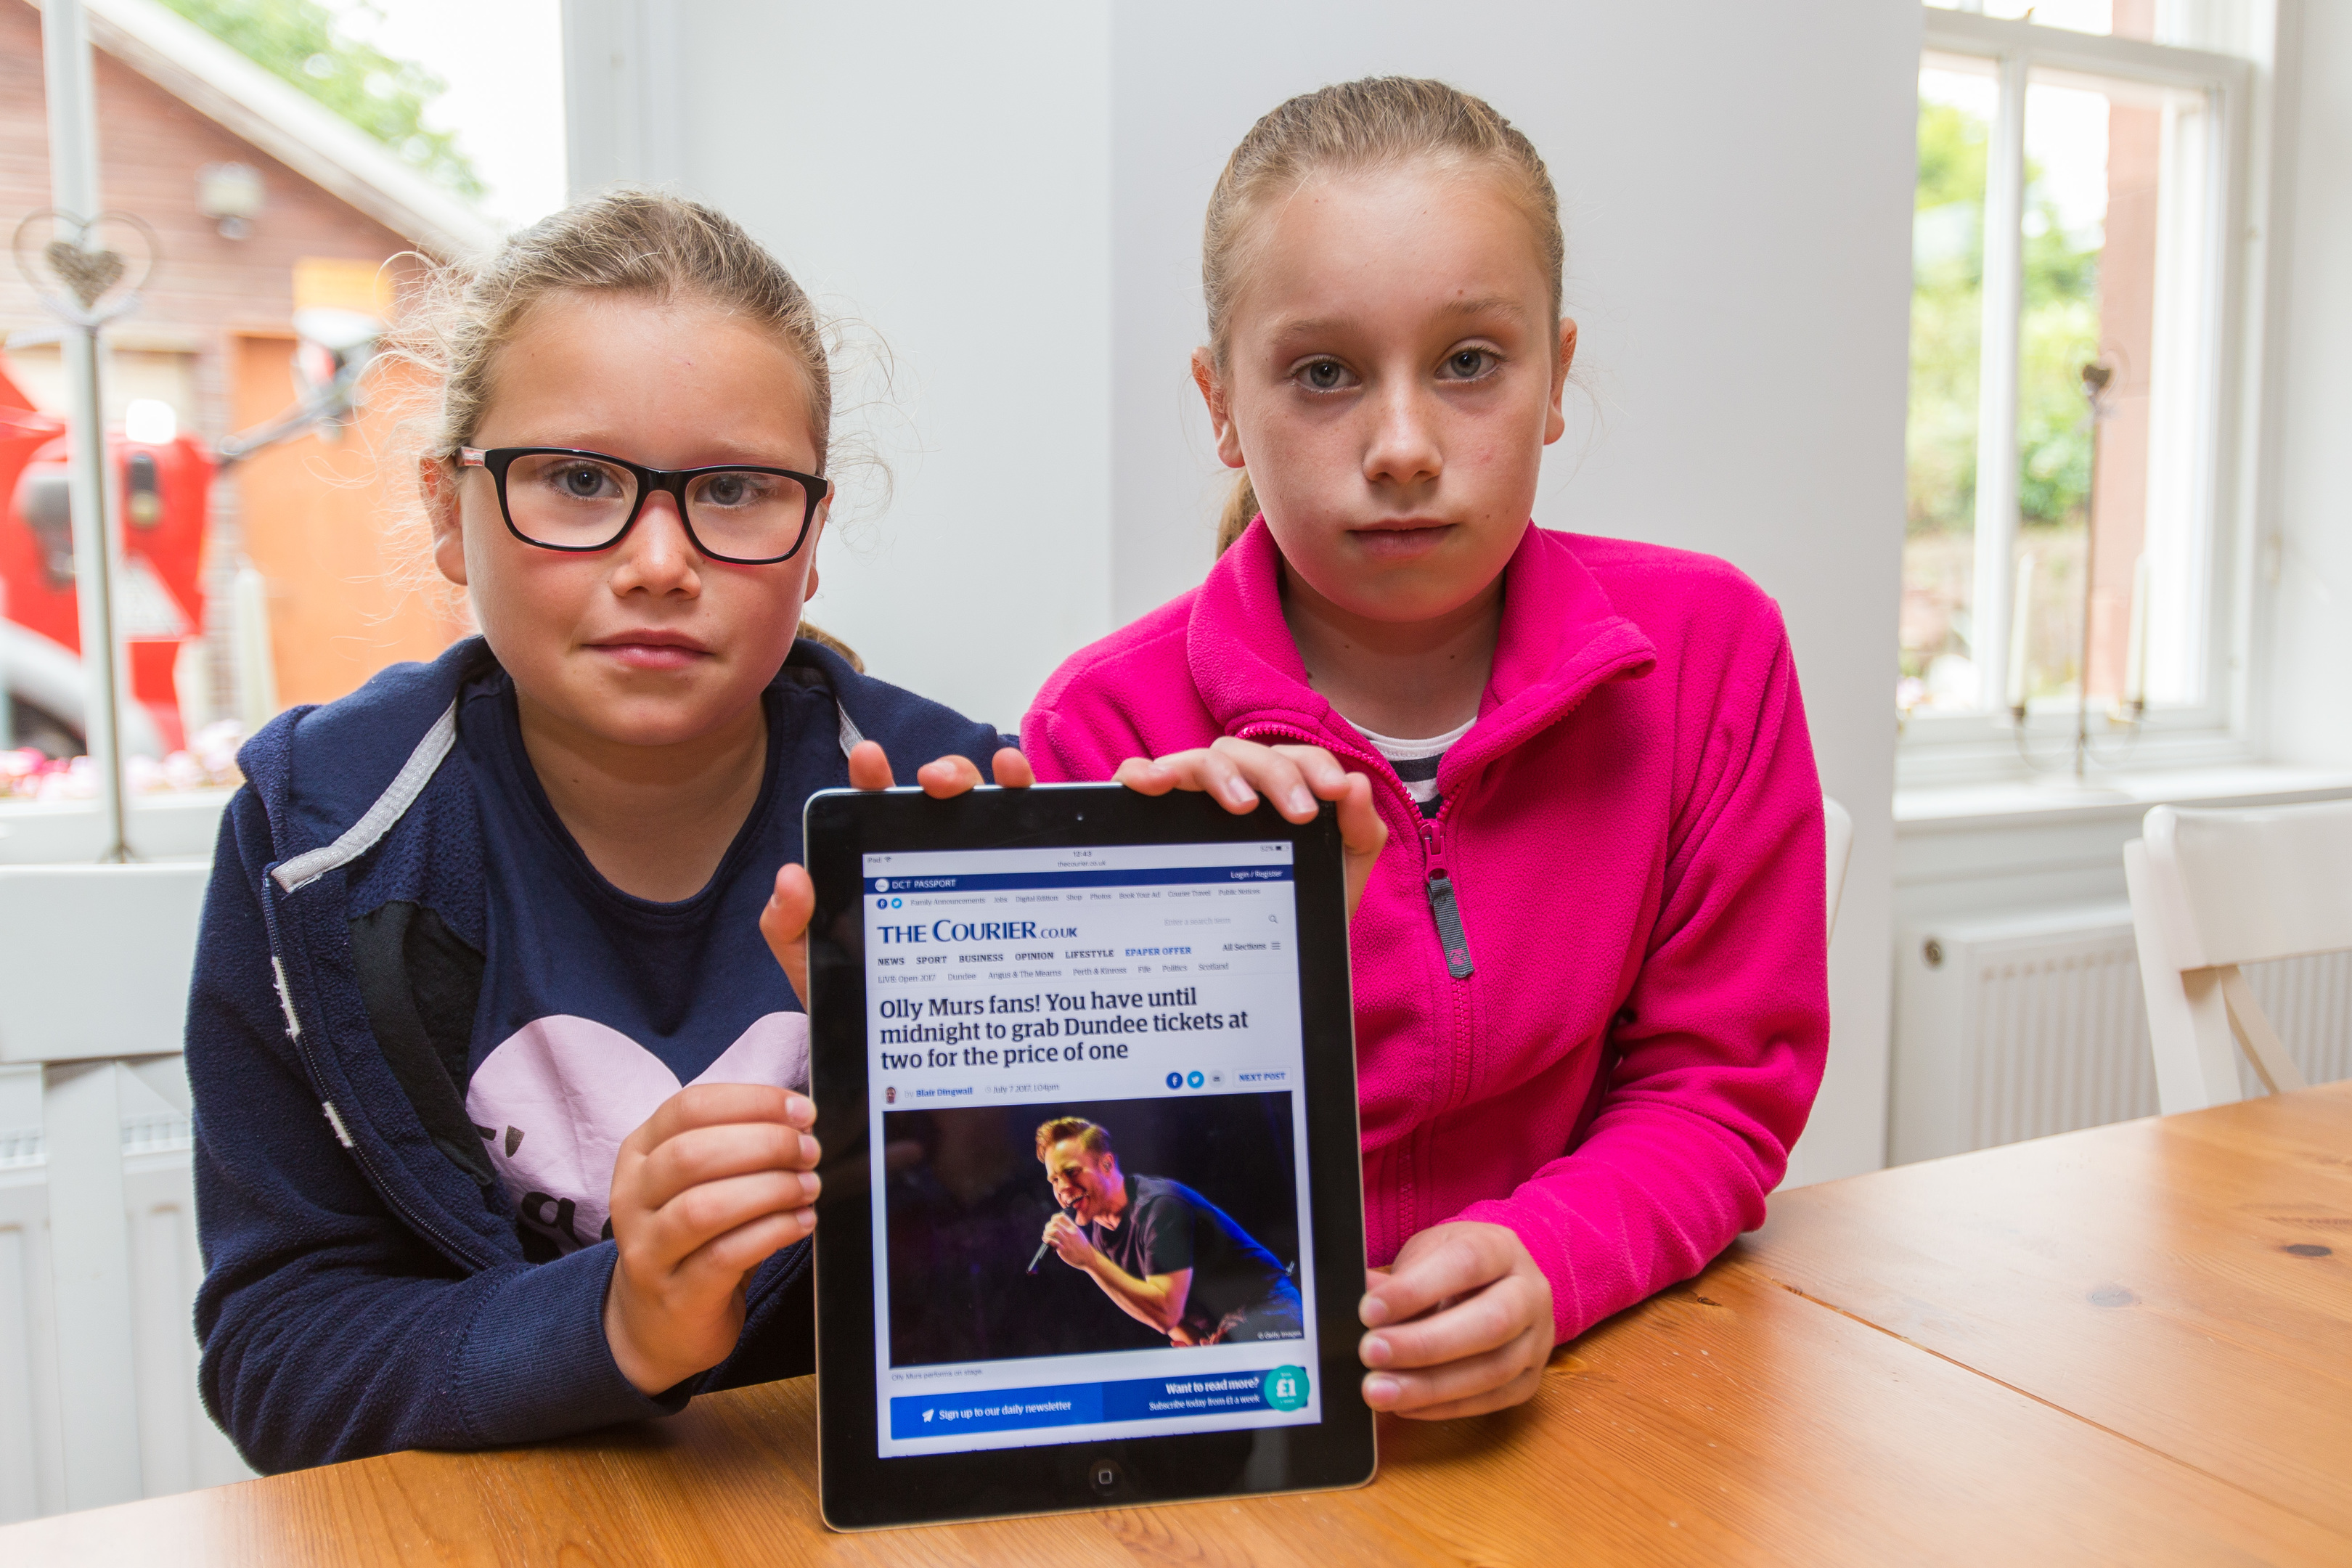 Molly and Mya's mum Karen was able to buy a second set of tickets after seeing an offer highlighted by The Courier.